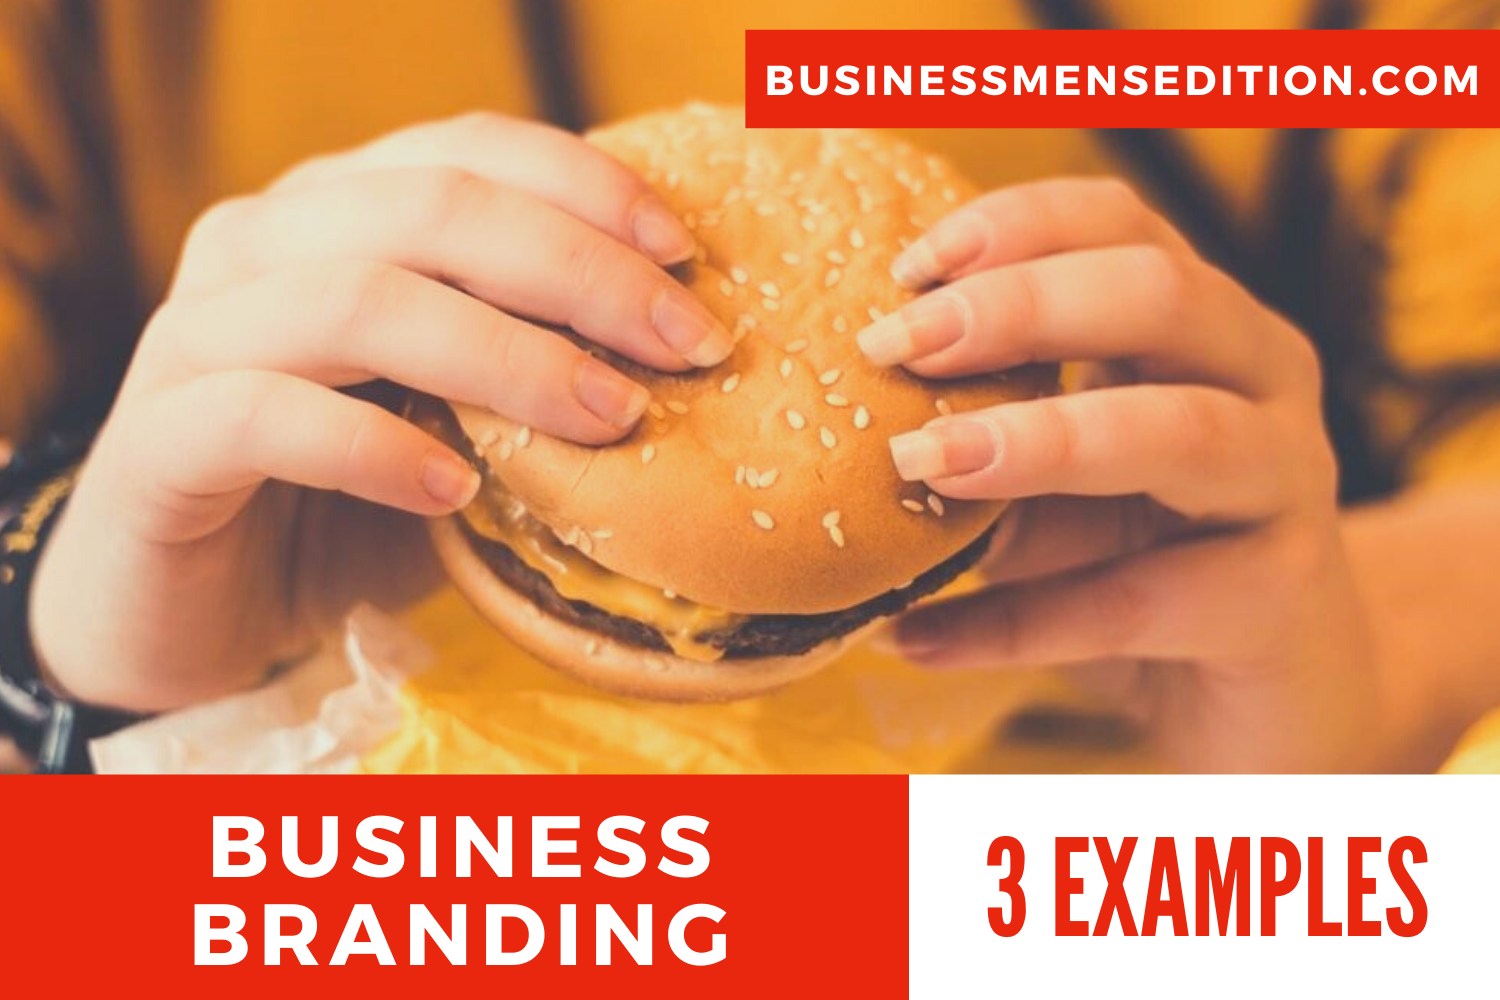 3 Examples of Business Branding You Cannot Miss